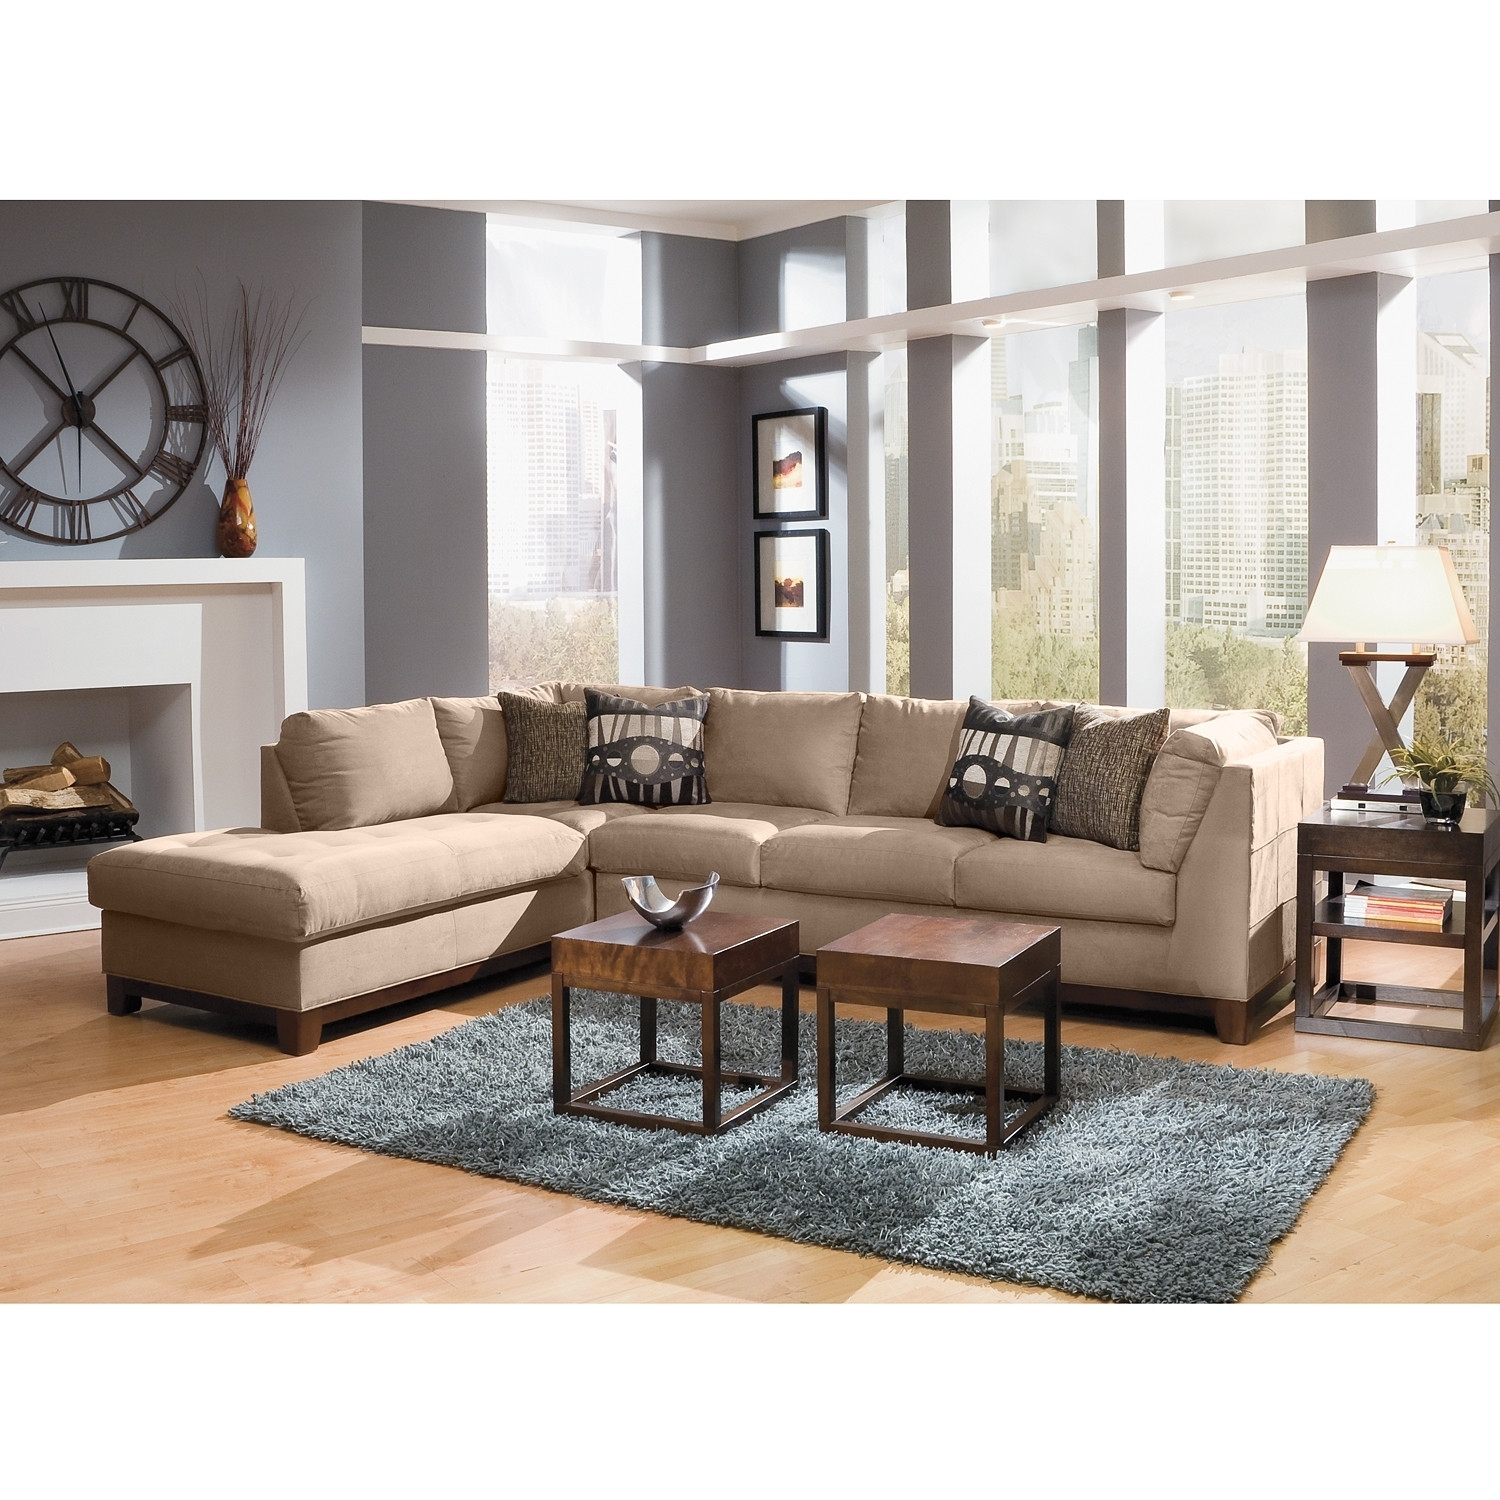 10 Choices Of Sectional Sofas In Greensboro Nc Sofa Ideas